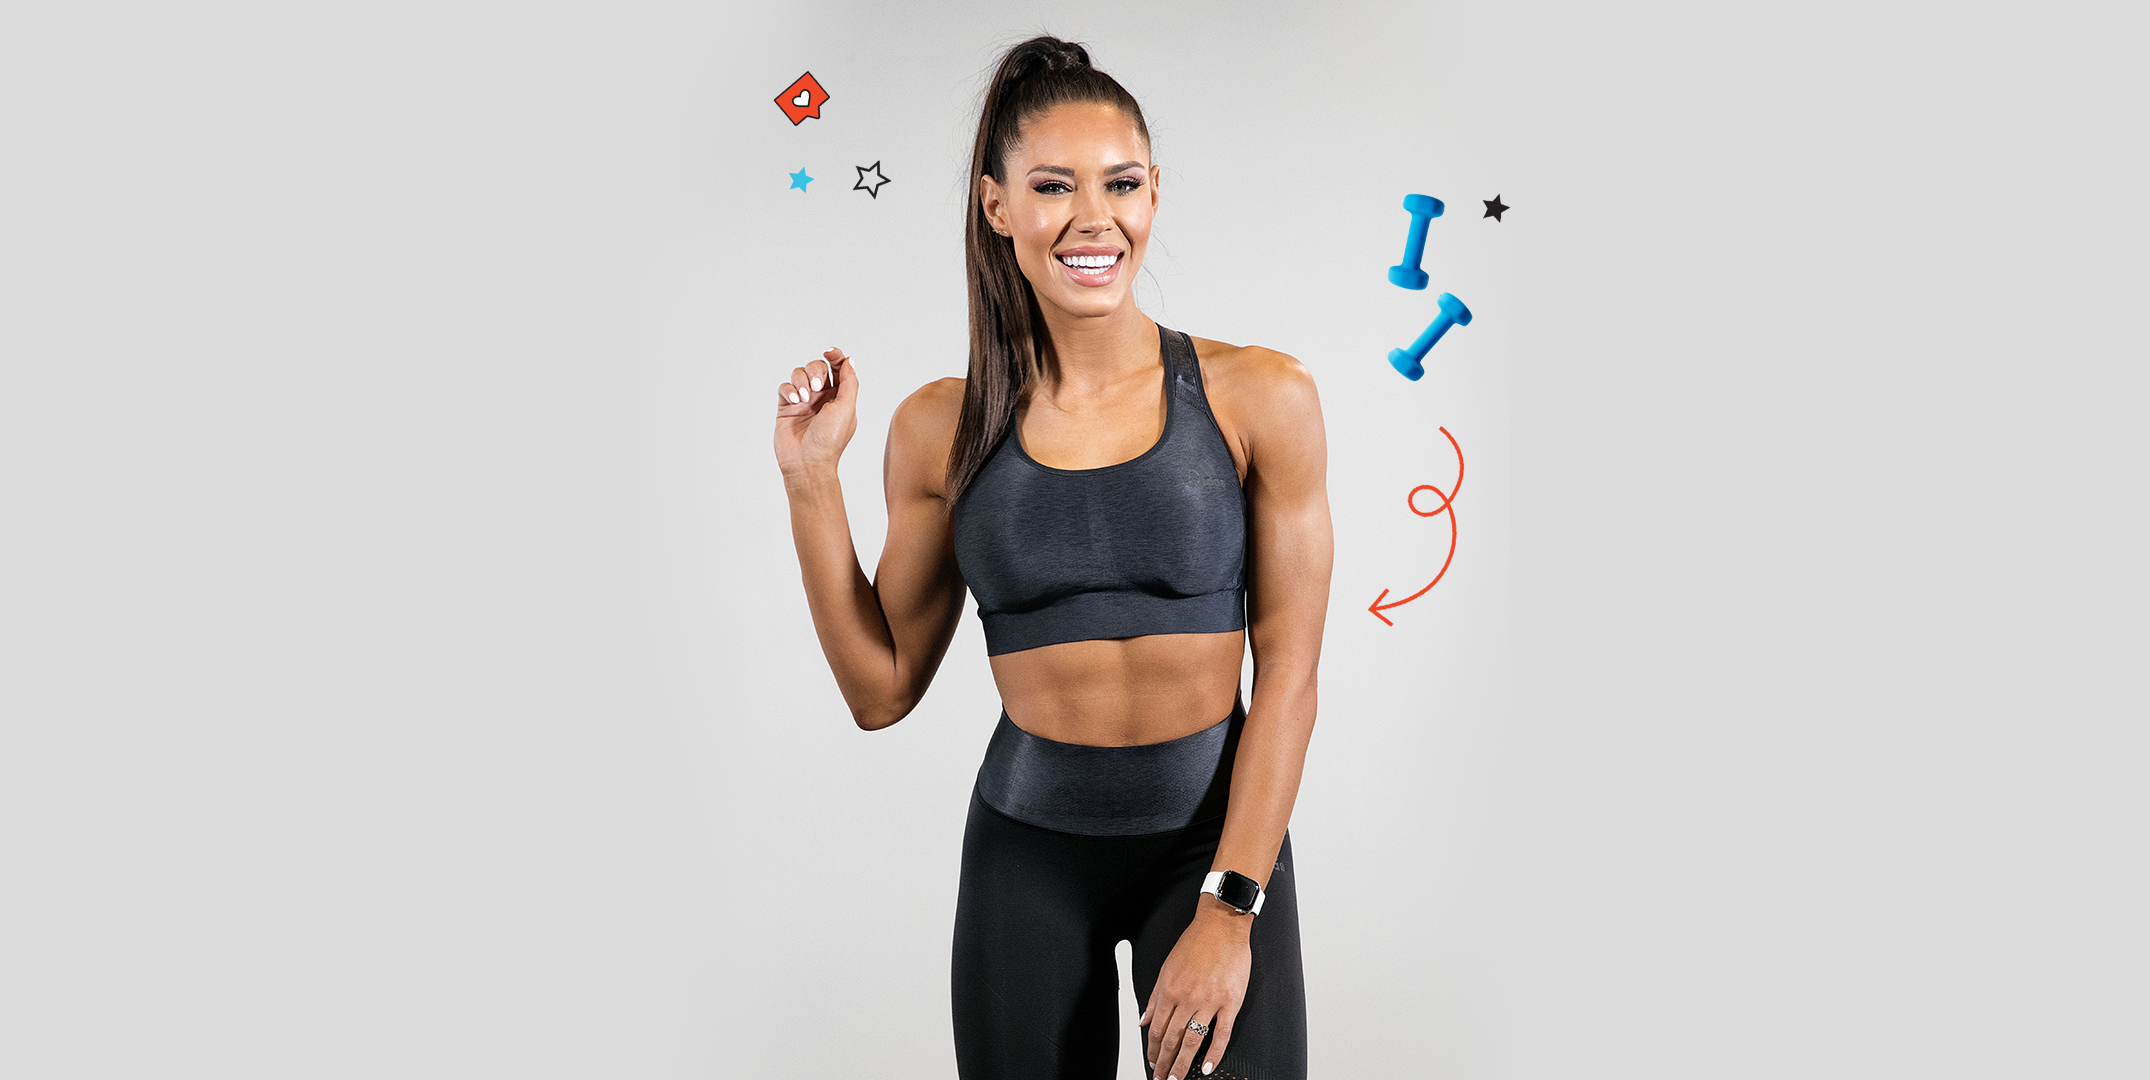 Sexy Arm Workout — Get Crazy-Toned Arms in 15 Minutes